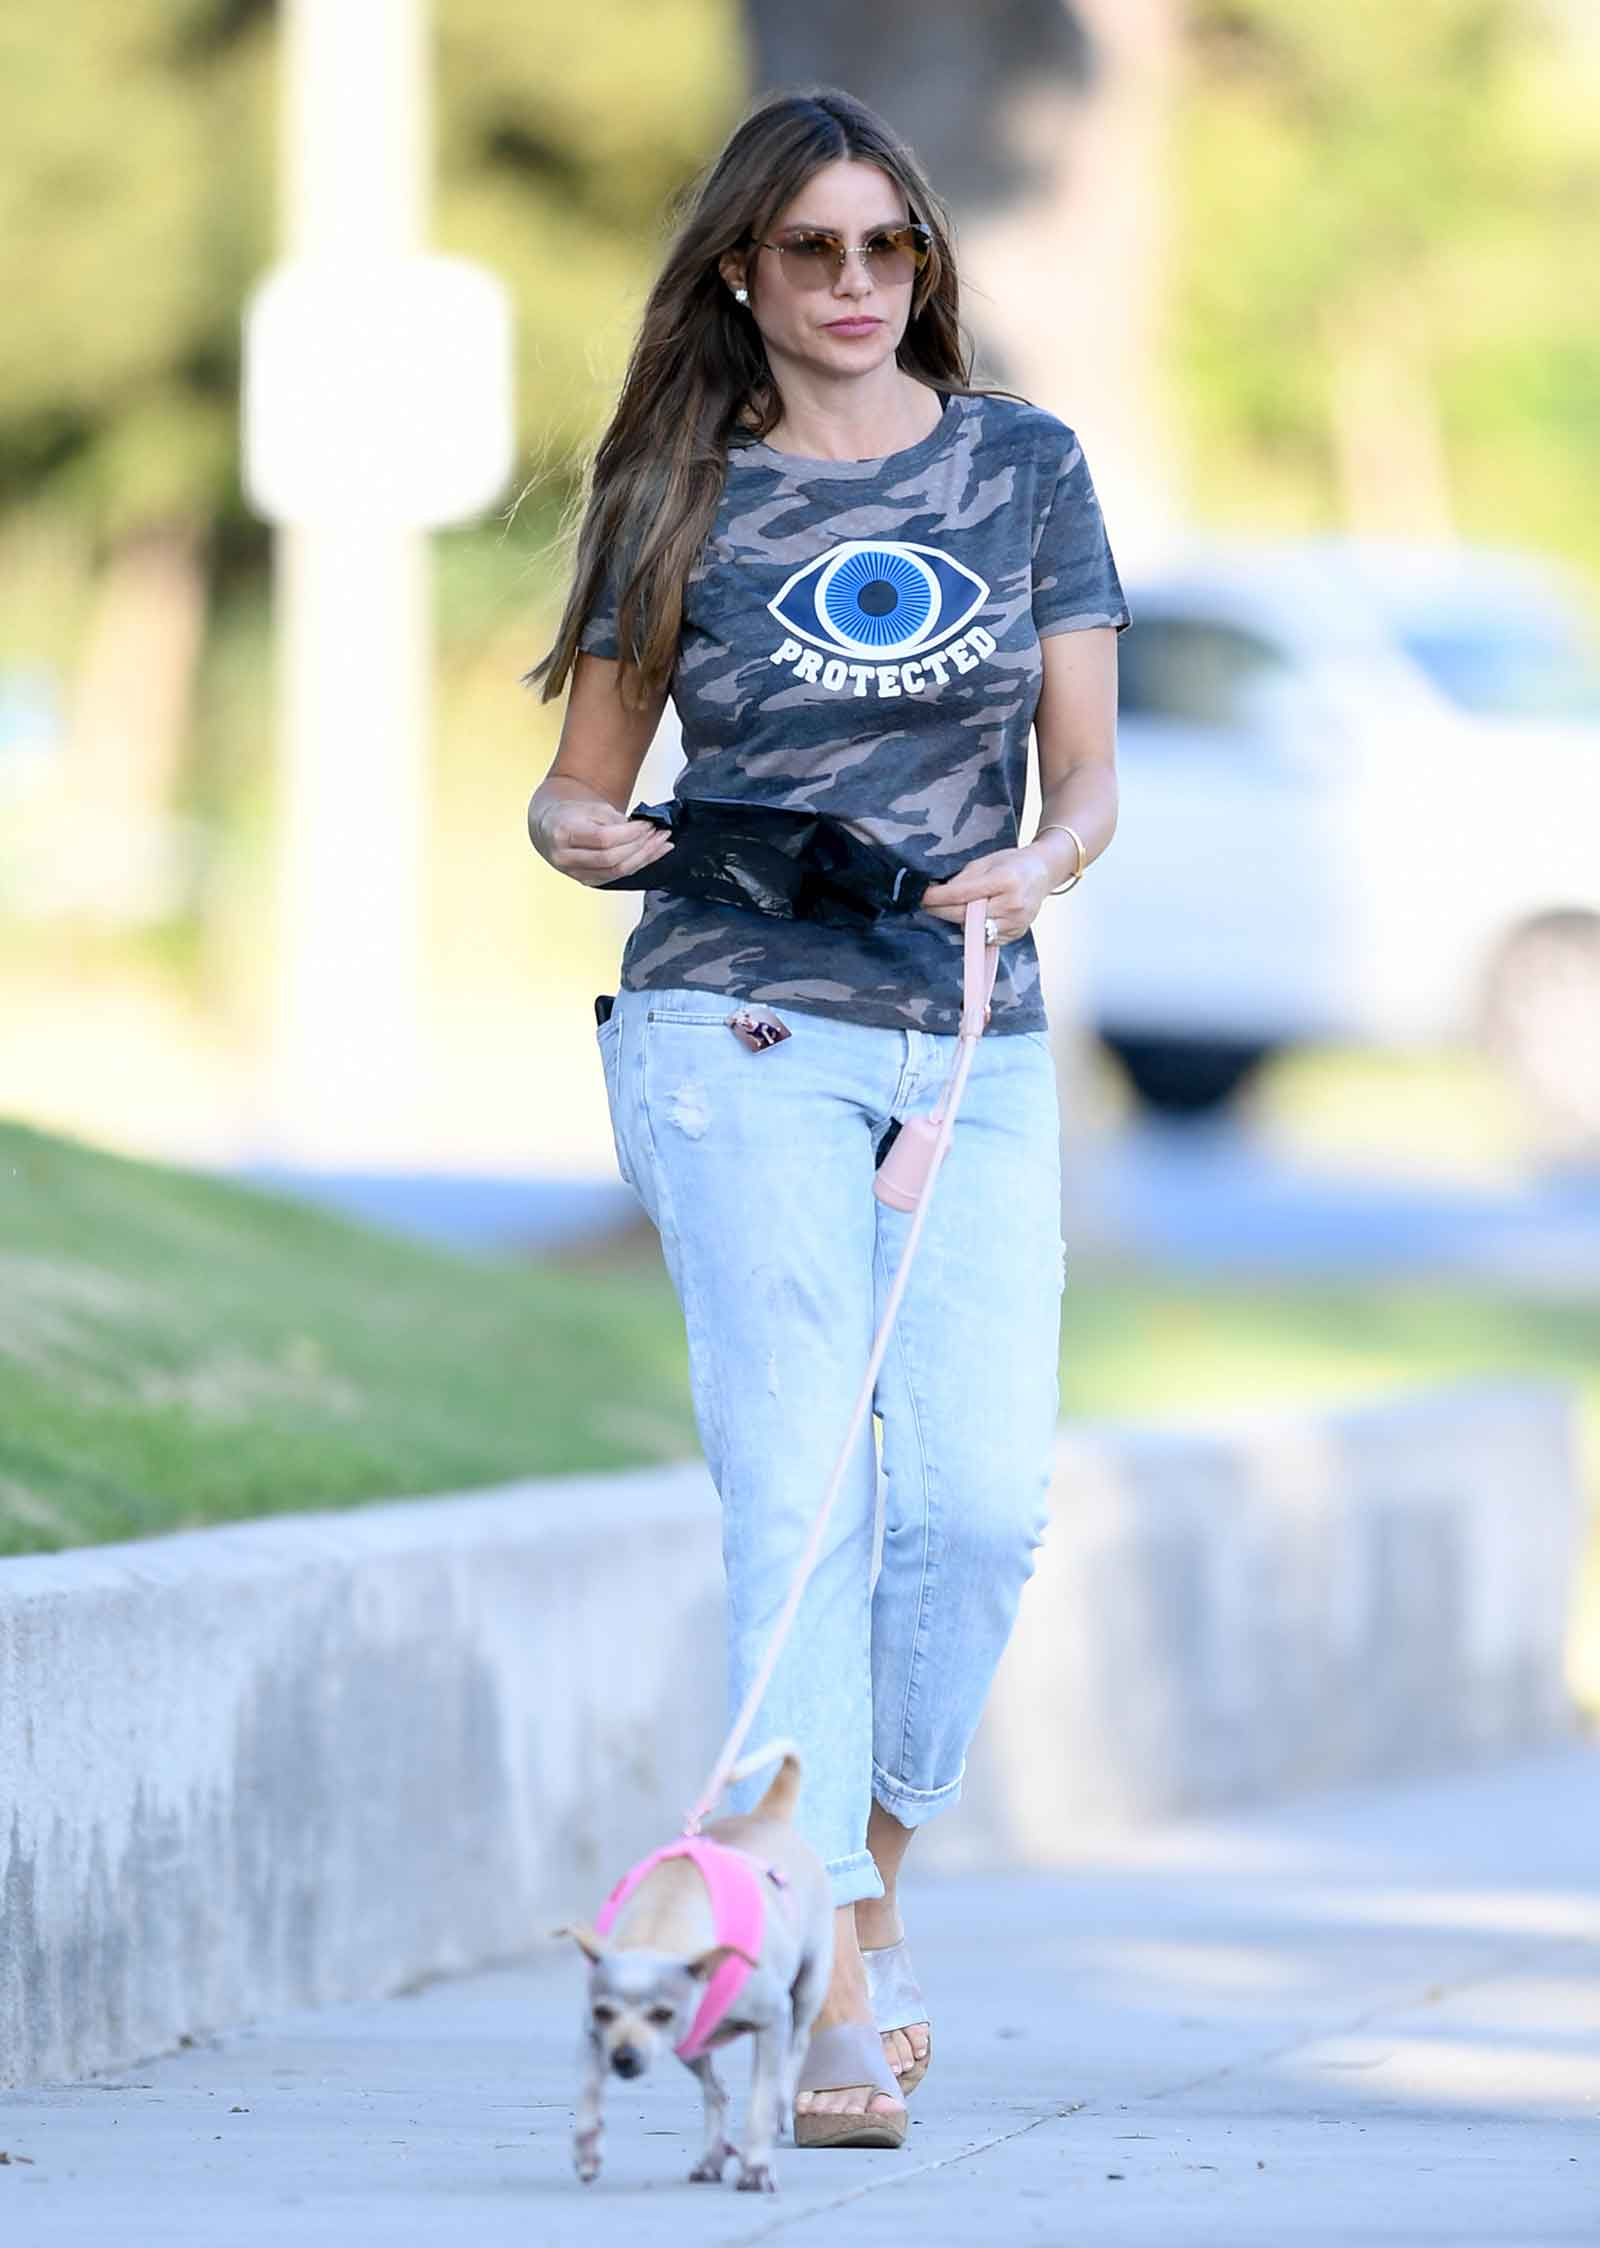 Sofia Vergara's evil eye camo tee is just $15 at Walmart!